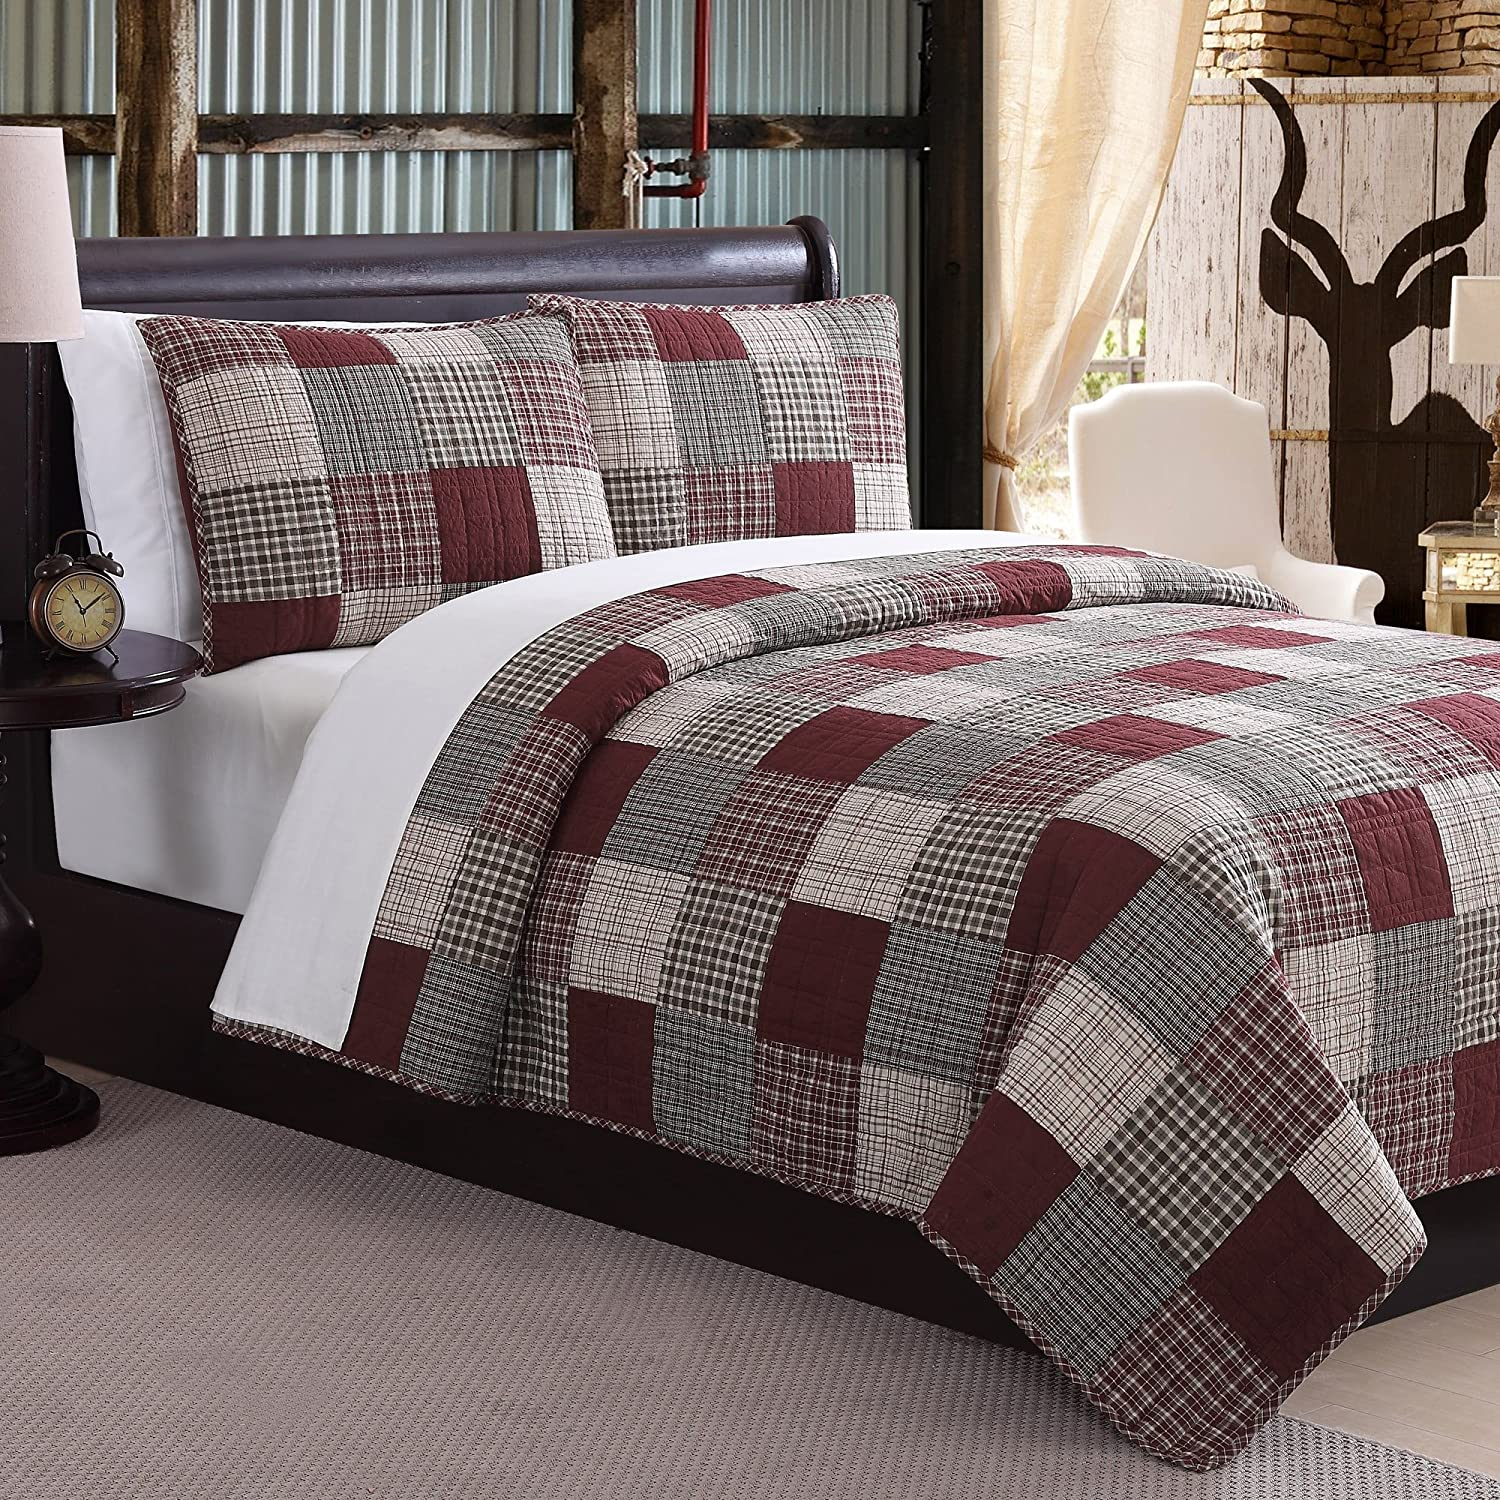 3 Piece Patchwork Plaid Patterned Quilt Queen Size, Featuring Classic Square Boxes Plaid Checkered Design, Eye Catching Bright Modern Artistic Print Bedroom, Vibrant Grey Red S & E